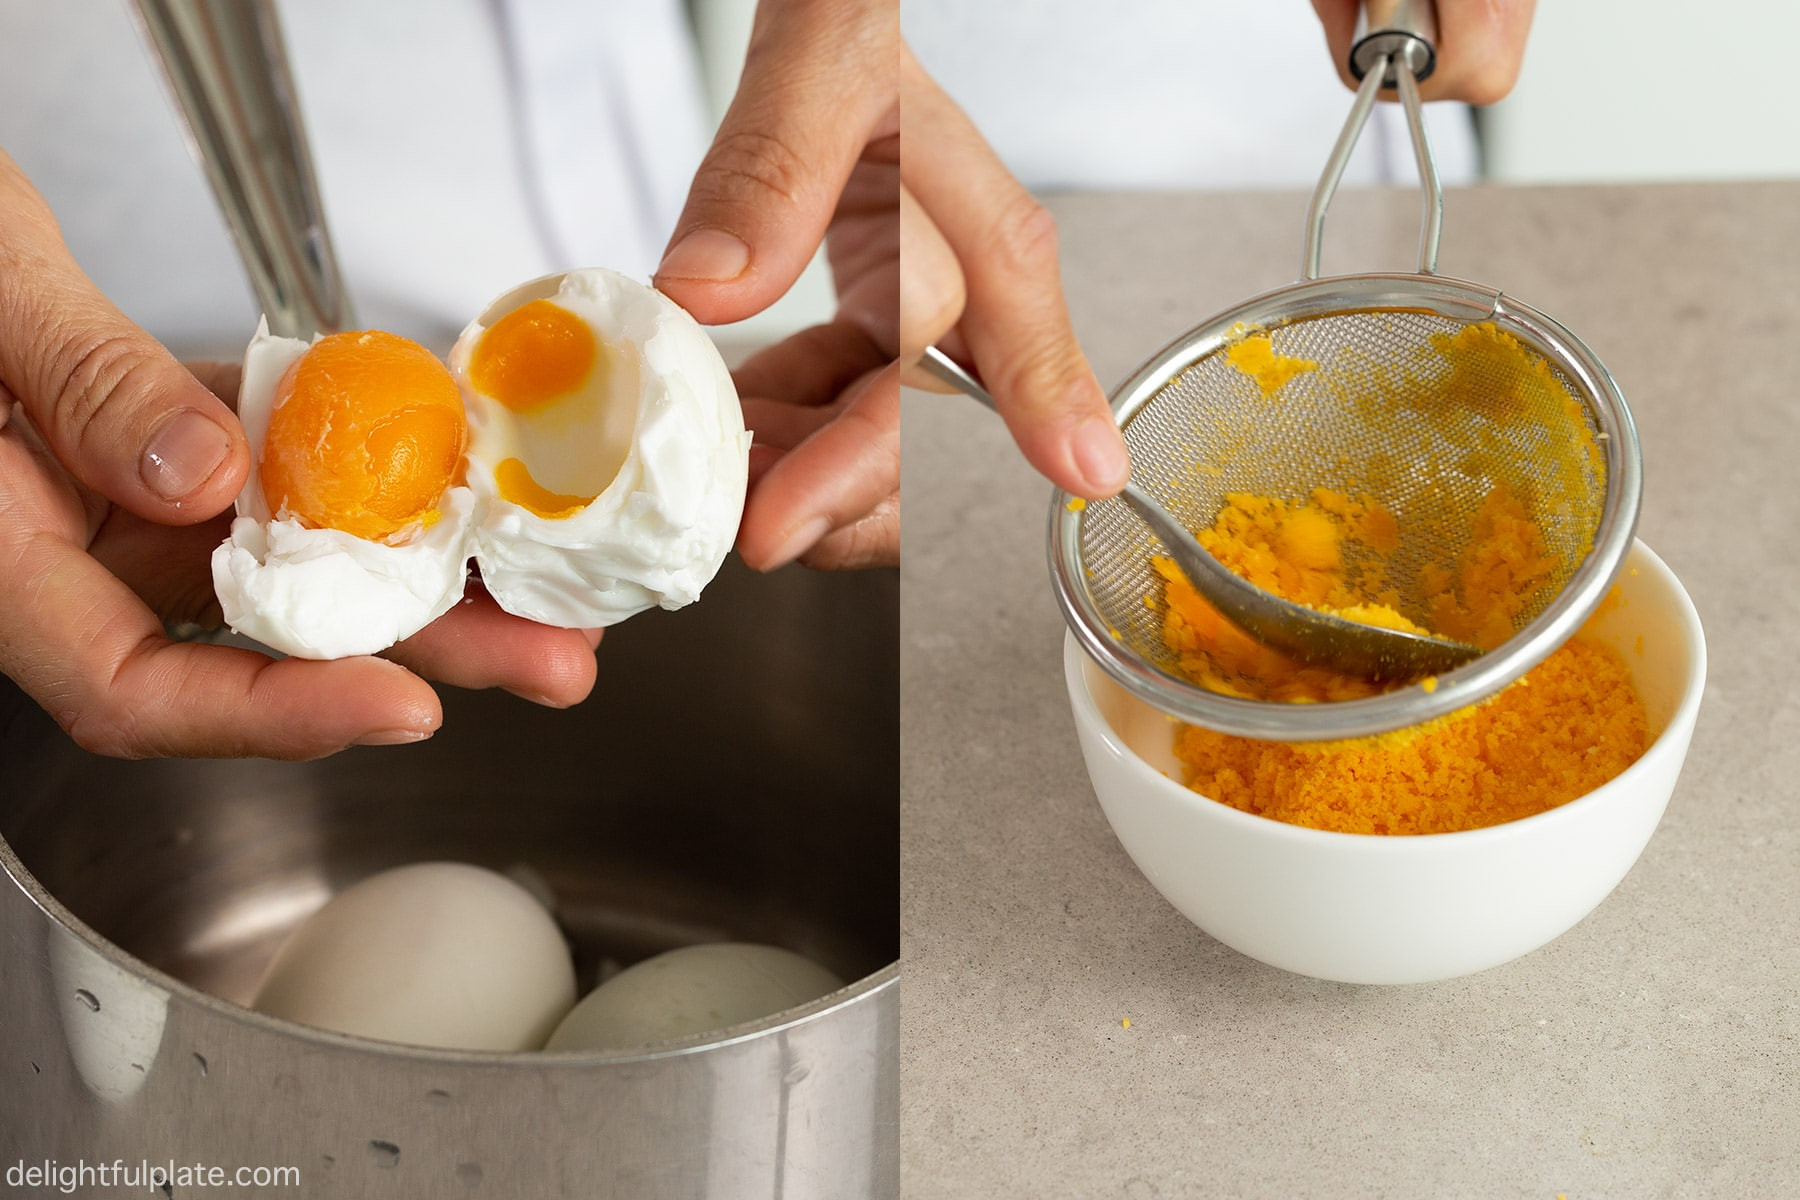 Step 2: boil the salted duck eggs and mash the yolks